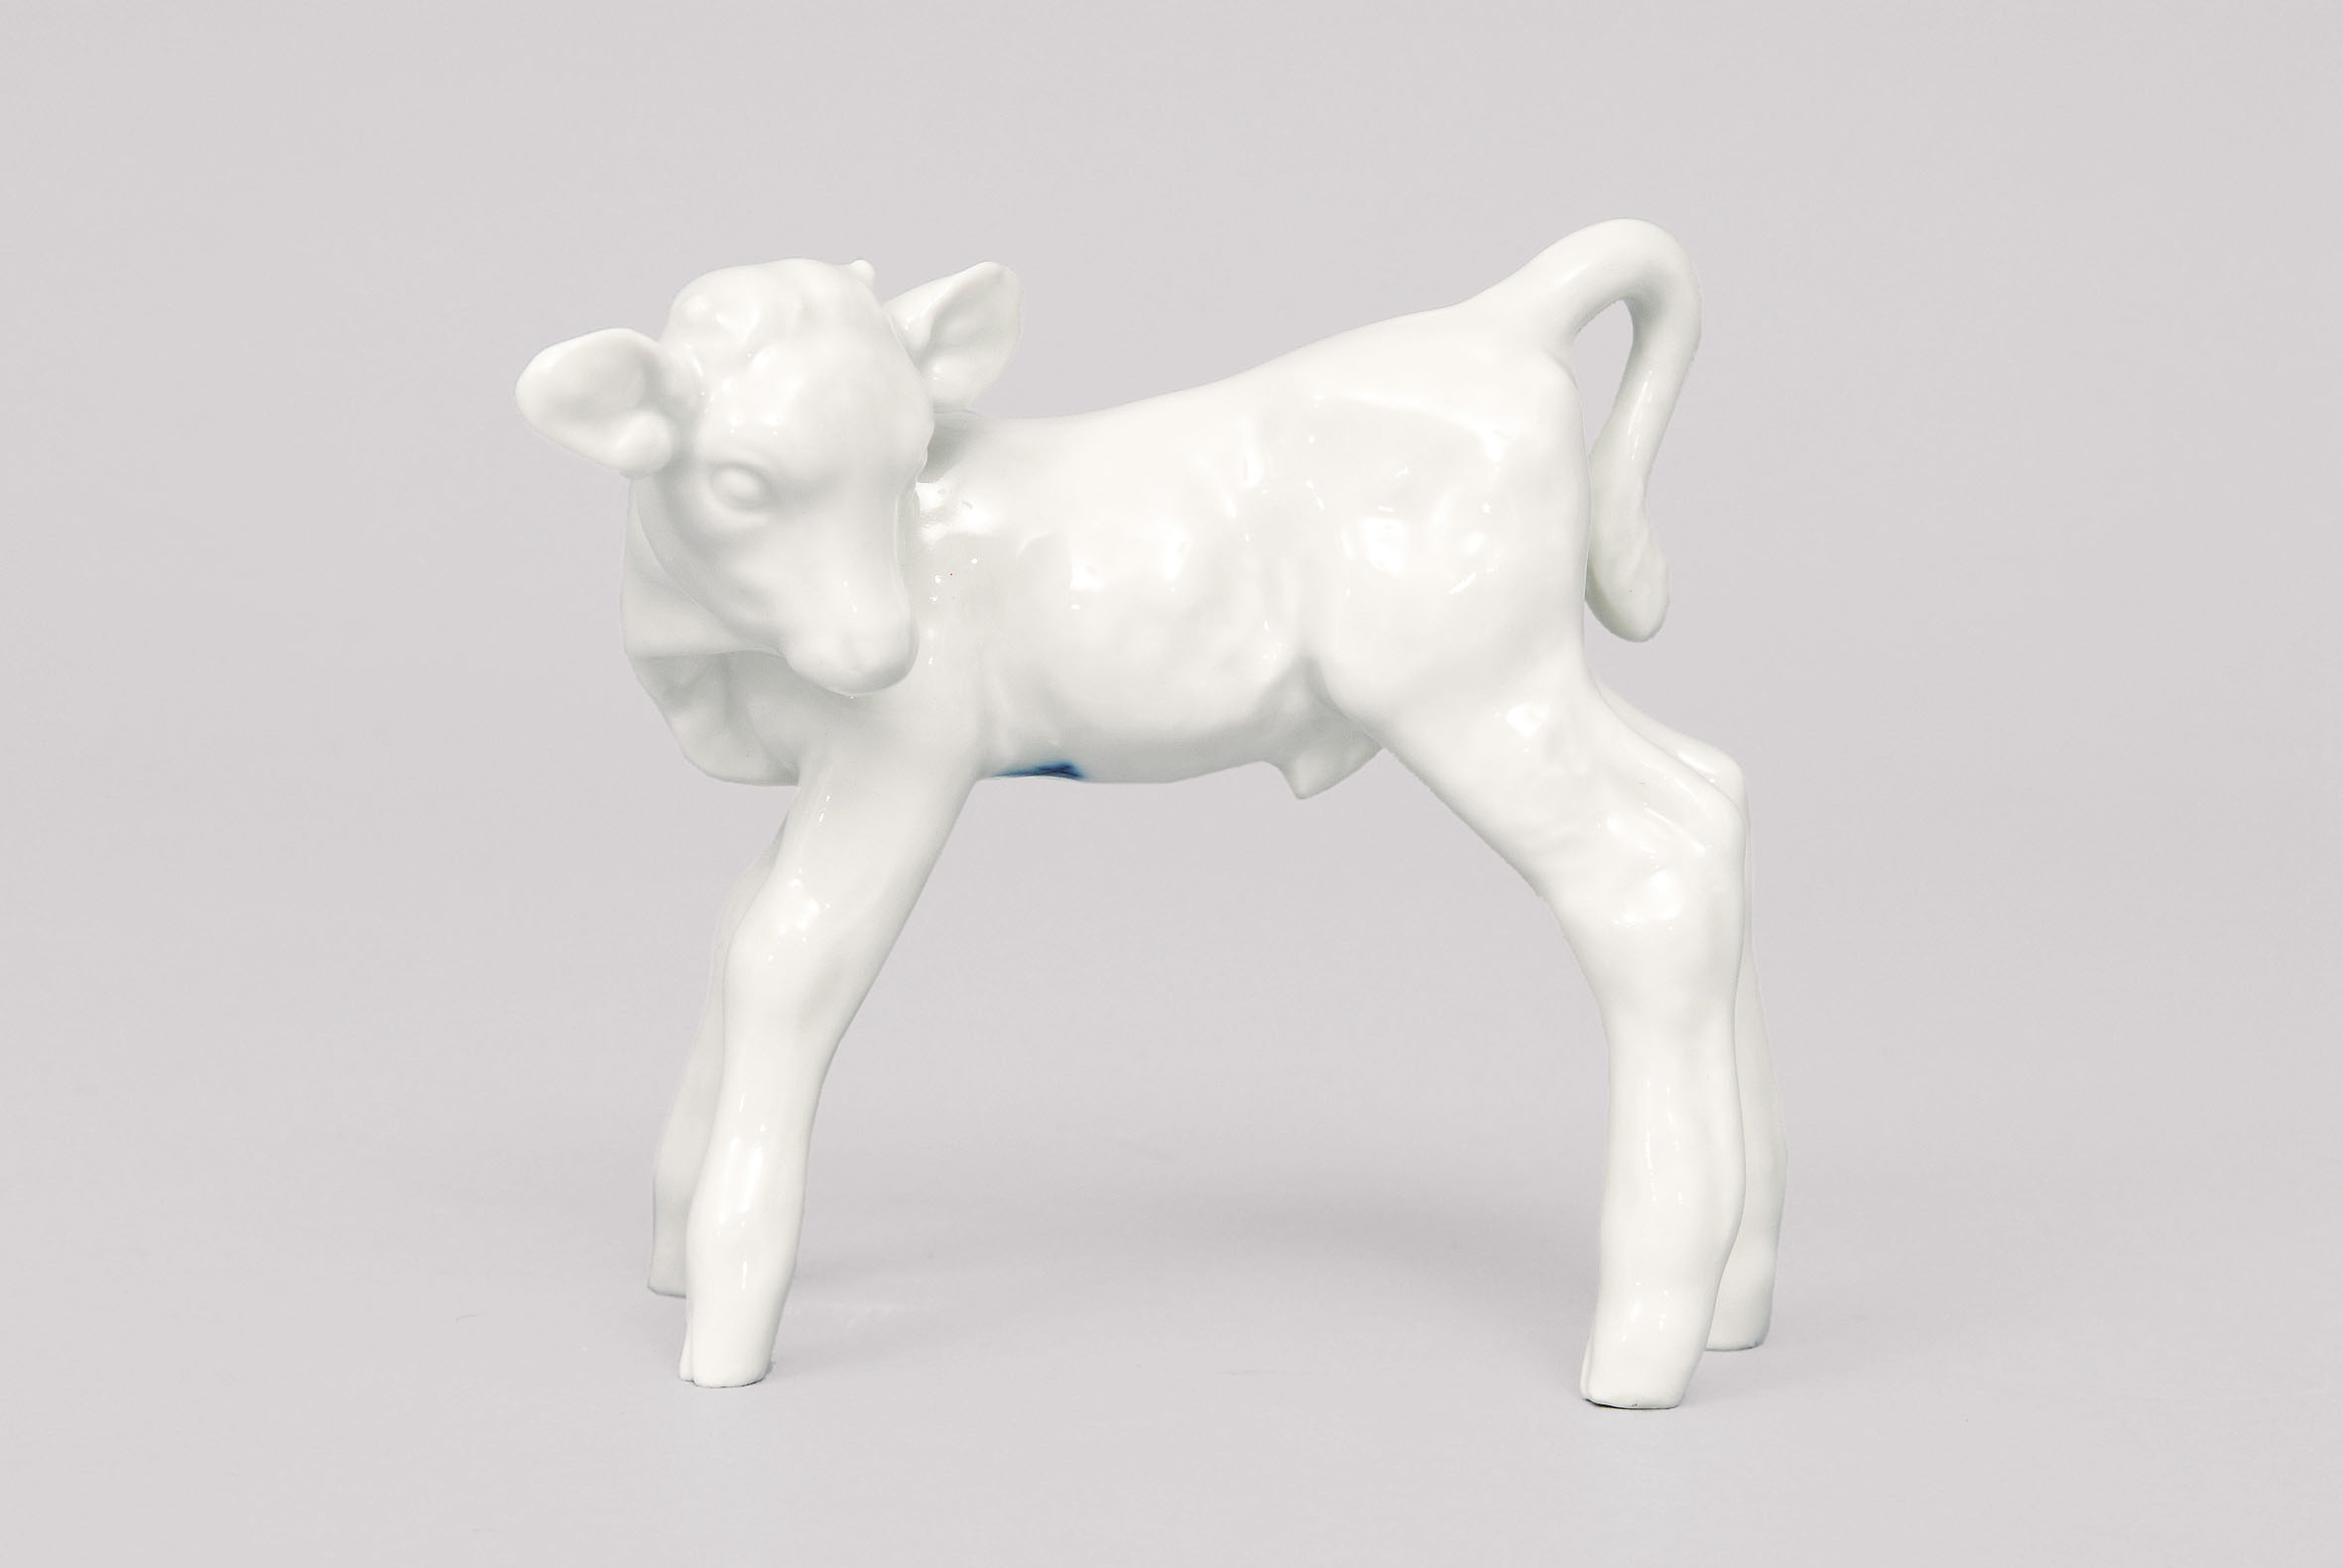 A small calf figurine